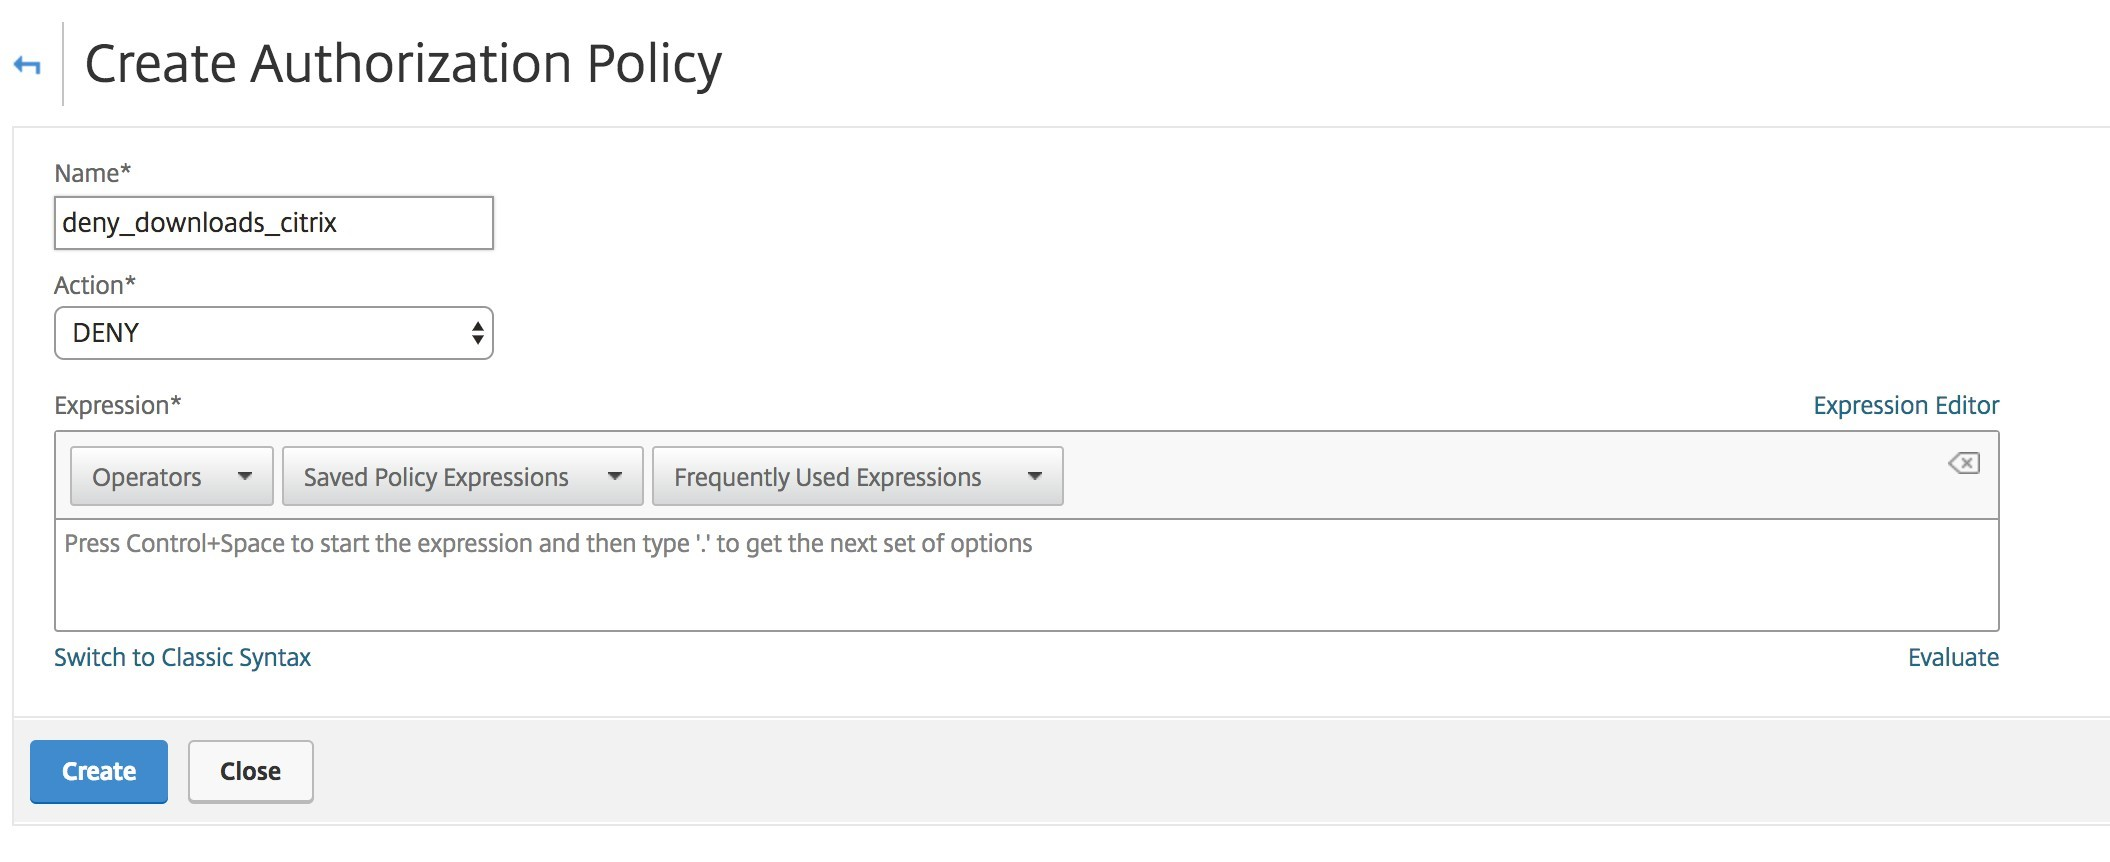 How Do I Perform Authorization Using Advanced Policy Expressions in